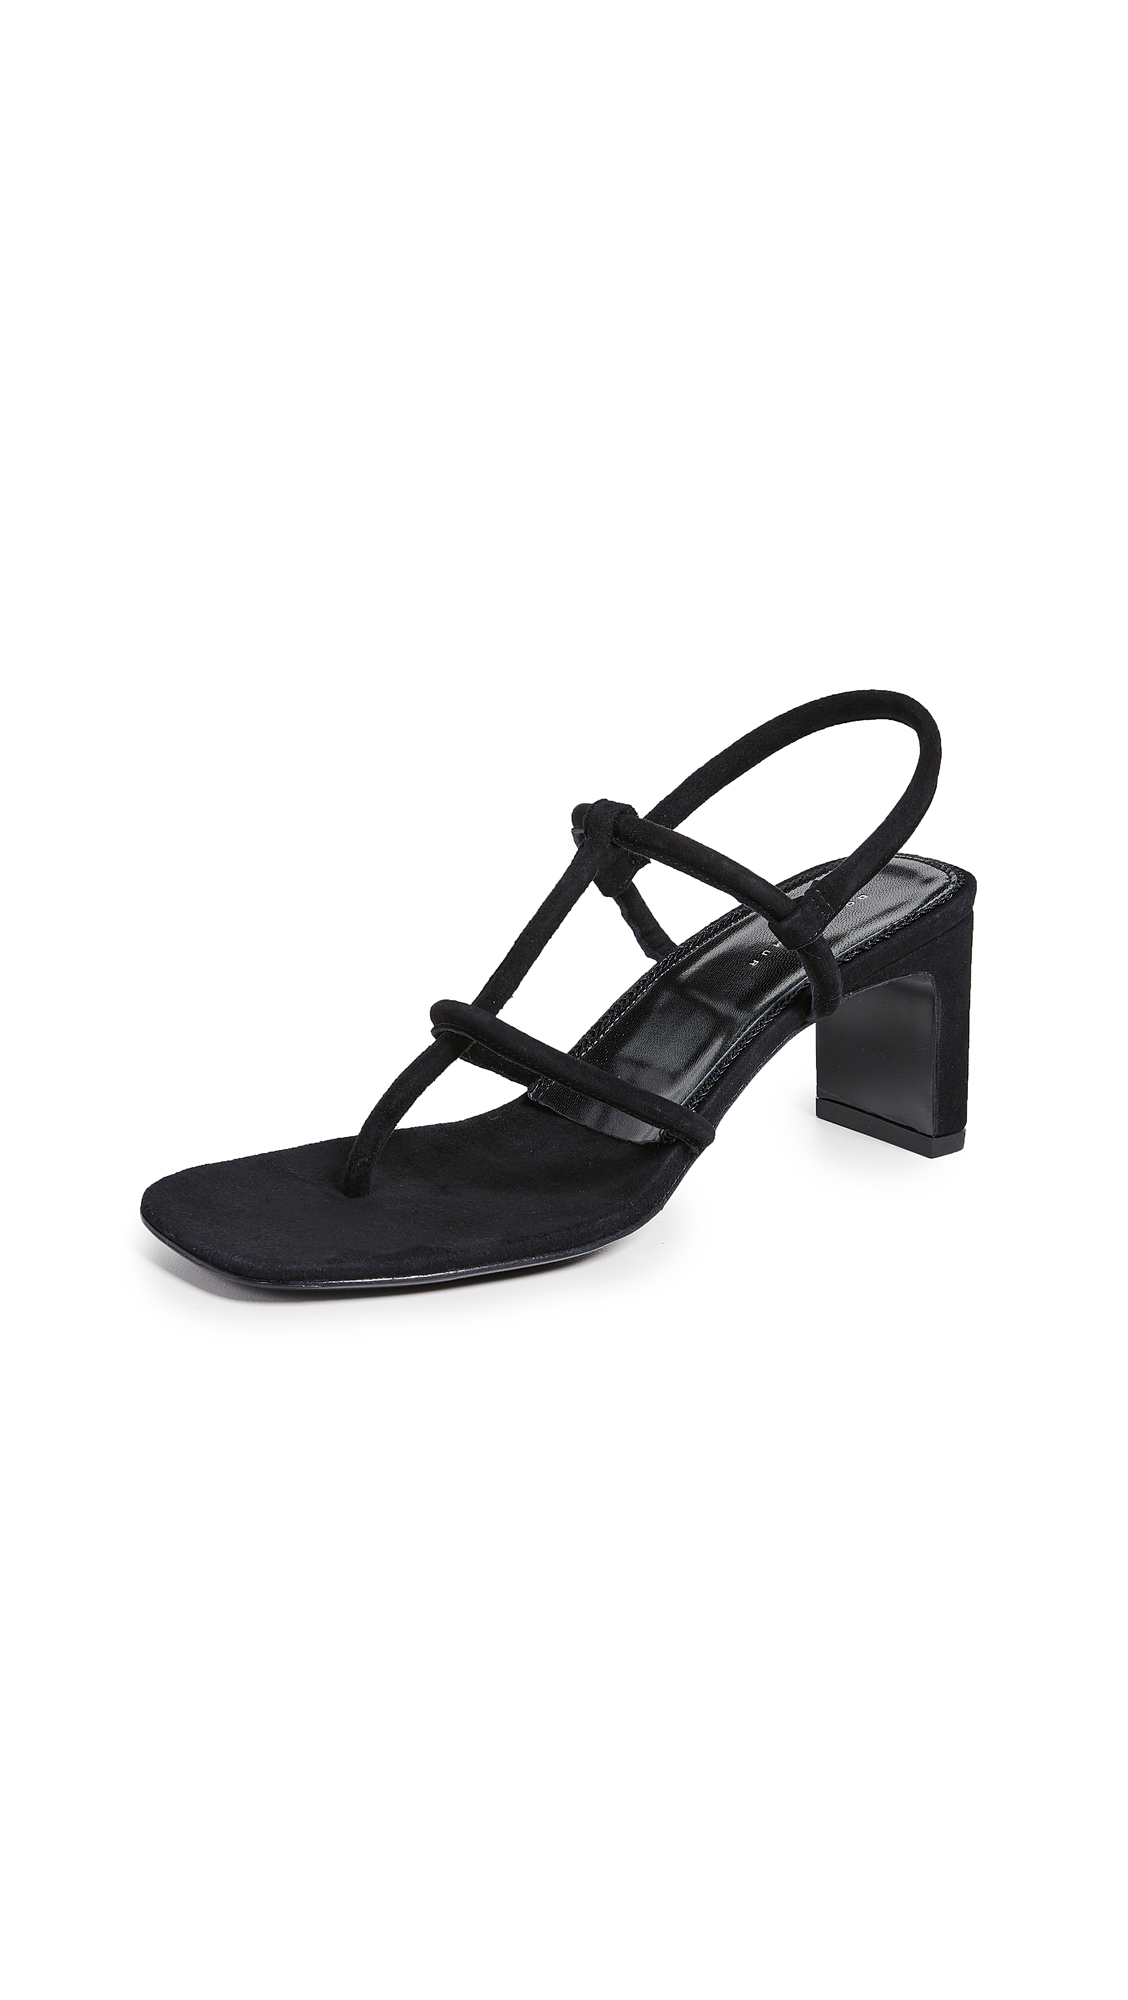 Dorateymur Thong Heeled Sandals - Black